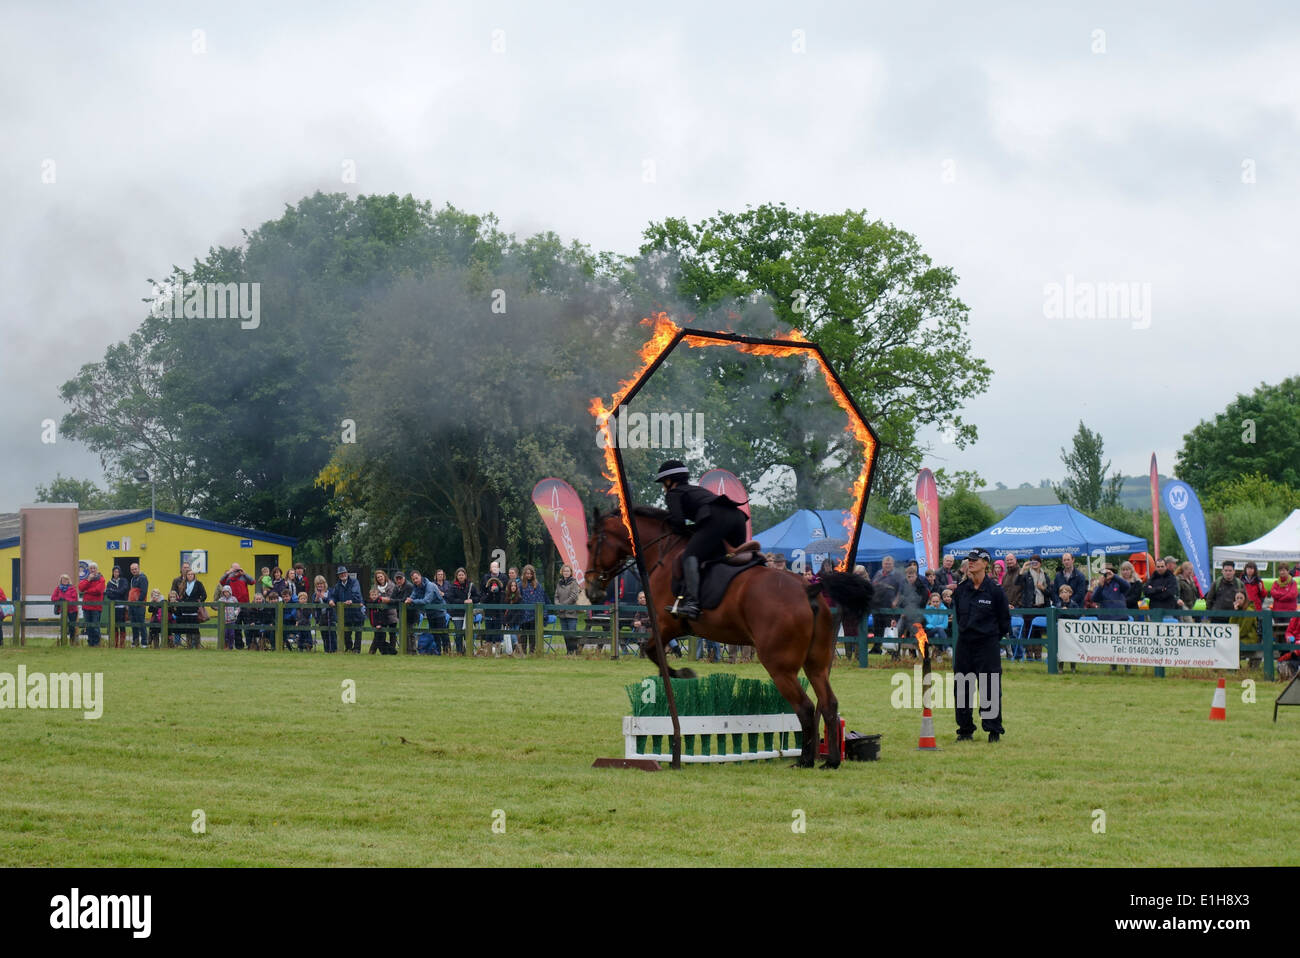 Mounted Section of the Avon & Somerset Police at The Bath & West Show 2014 - Stock Image